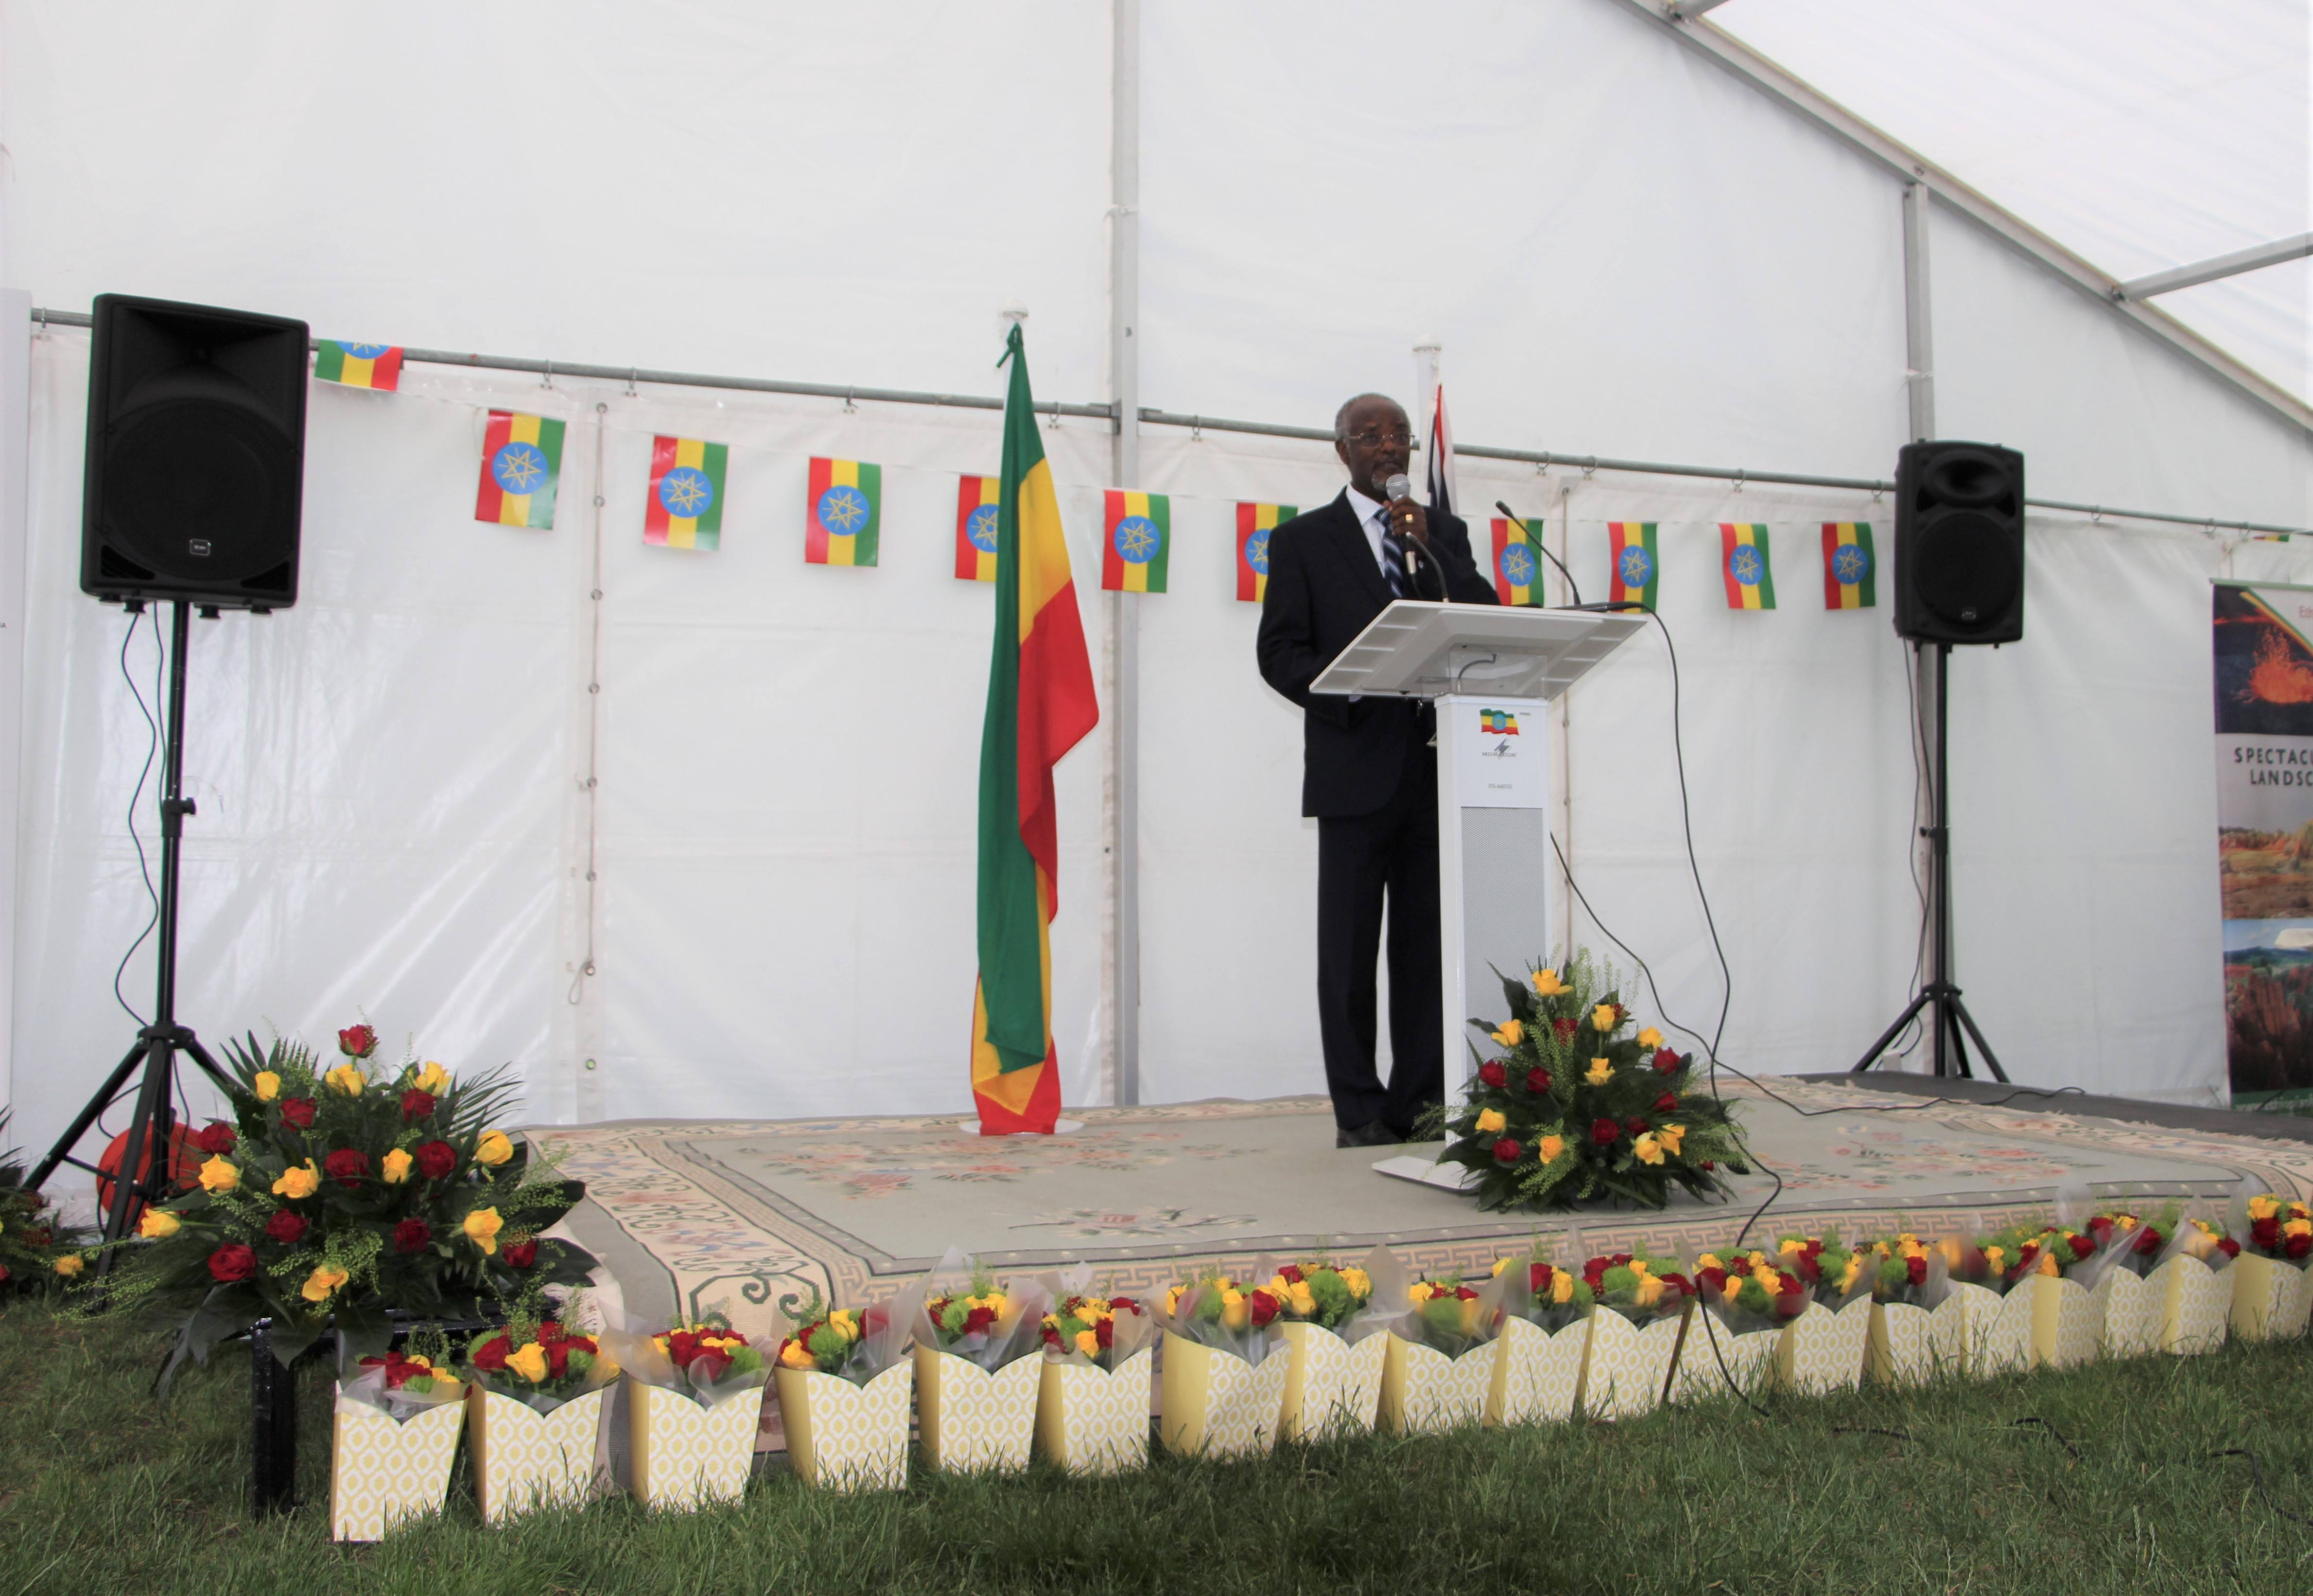 National Day celebrated at time of renewal | Embassy of